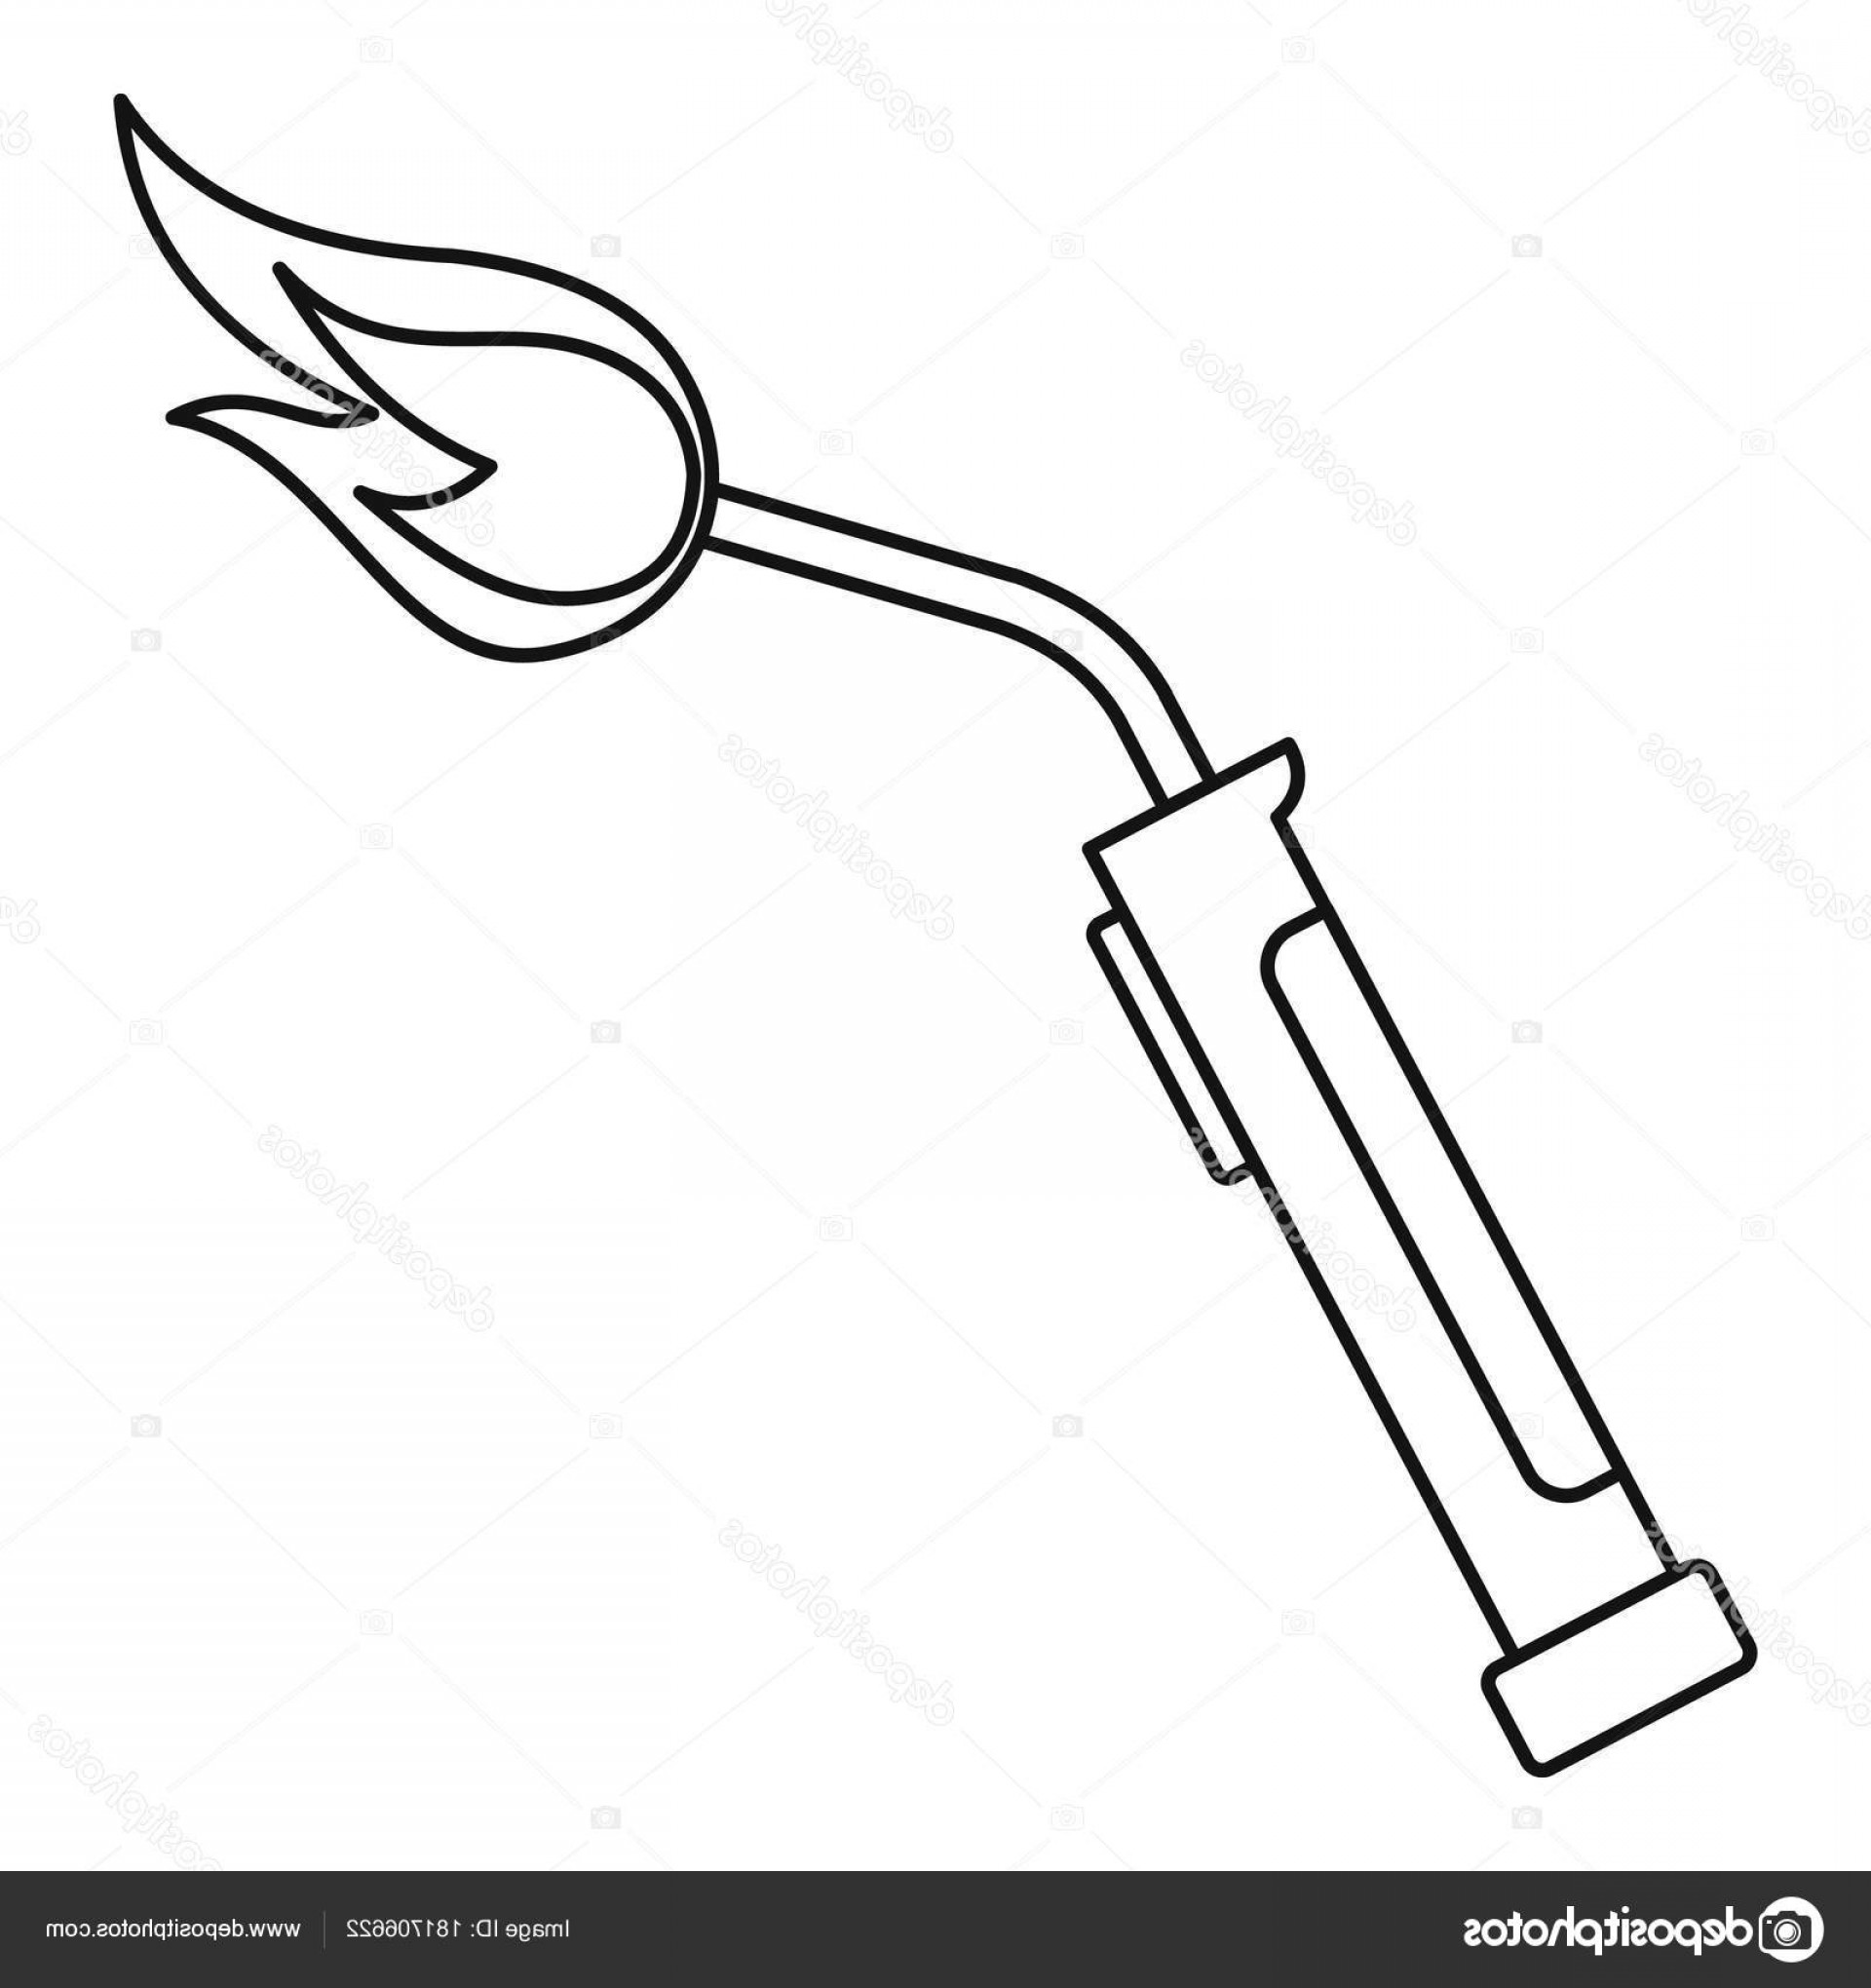 Welder's Torch Vector: Stock Illustration Welding Torch Icon Outline